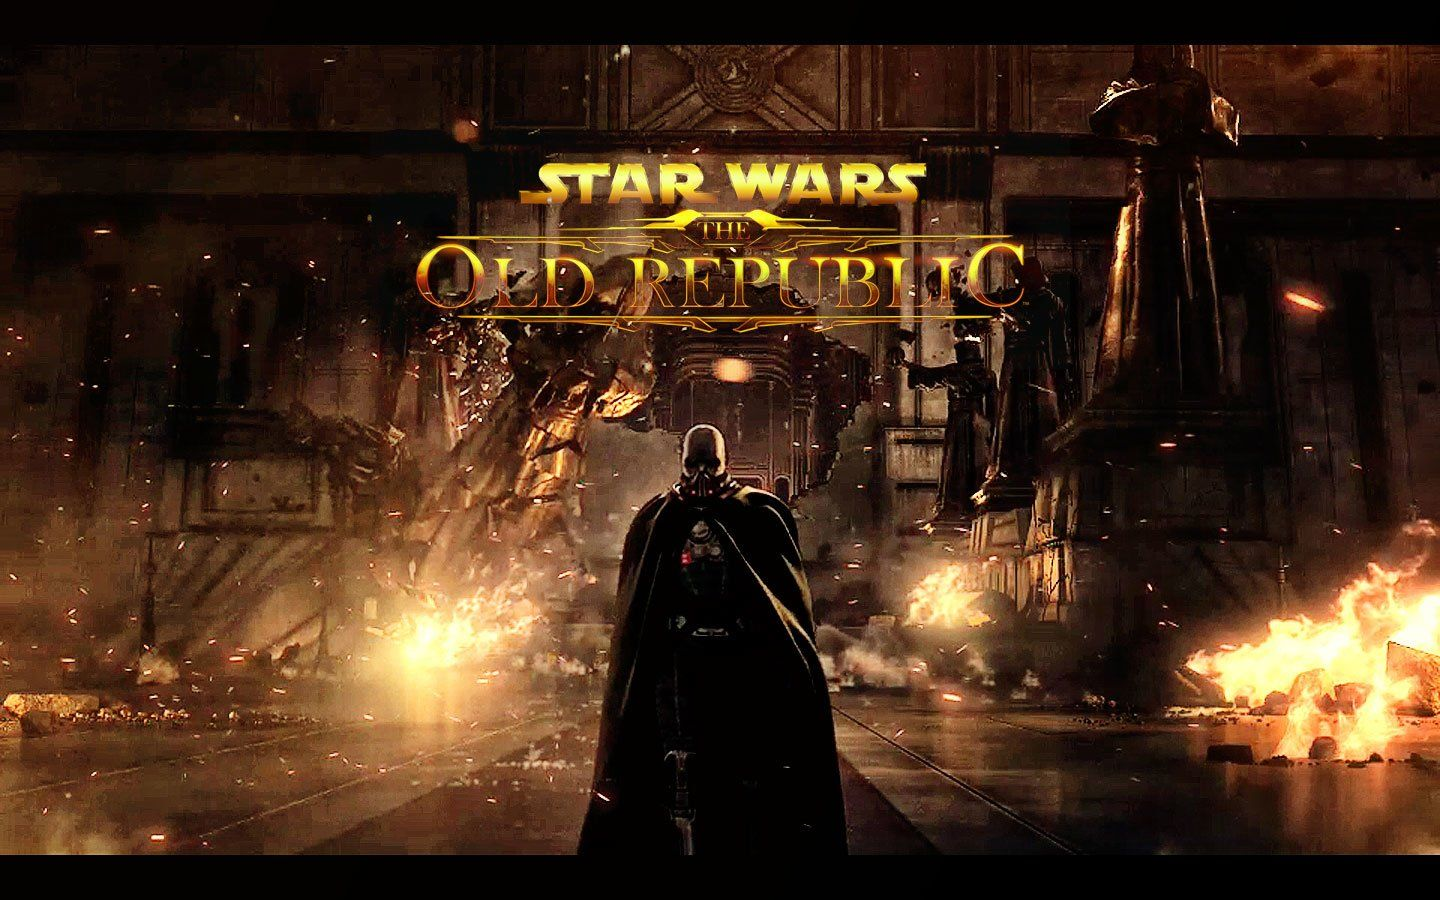 Star Wars The Old Republic Wallpapers Top Free Star Wars The Old